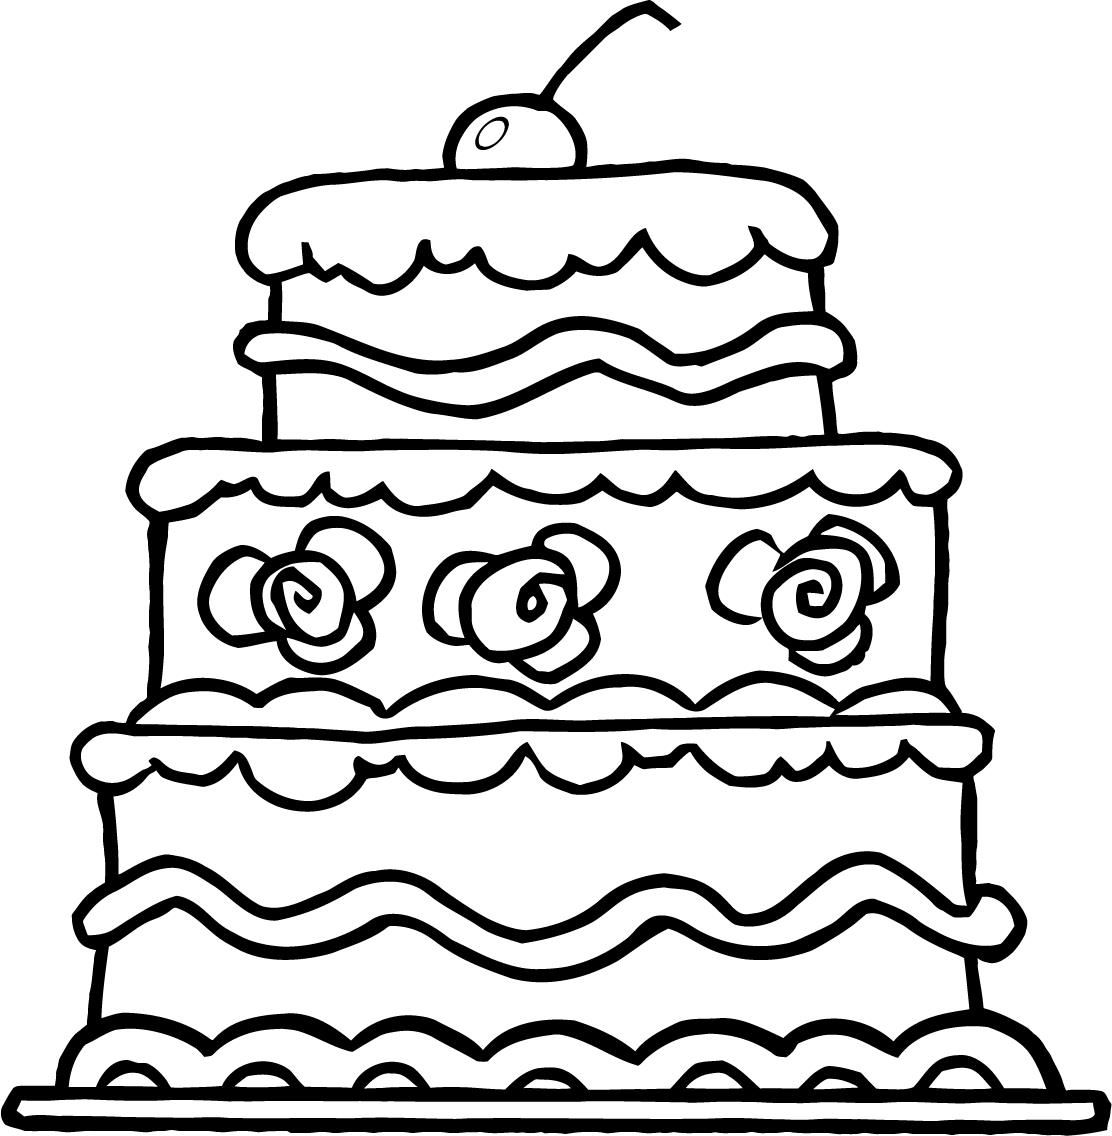 coloring cake pages get this birthday cake coloring pages free printable 9466 pages coloring cake